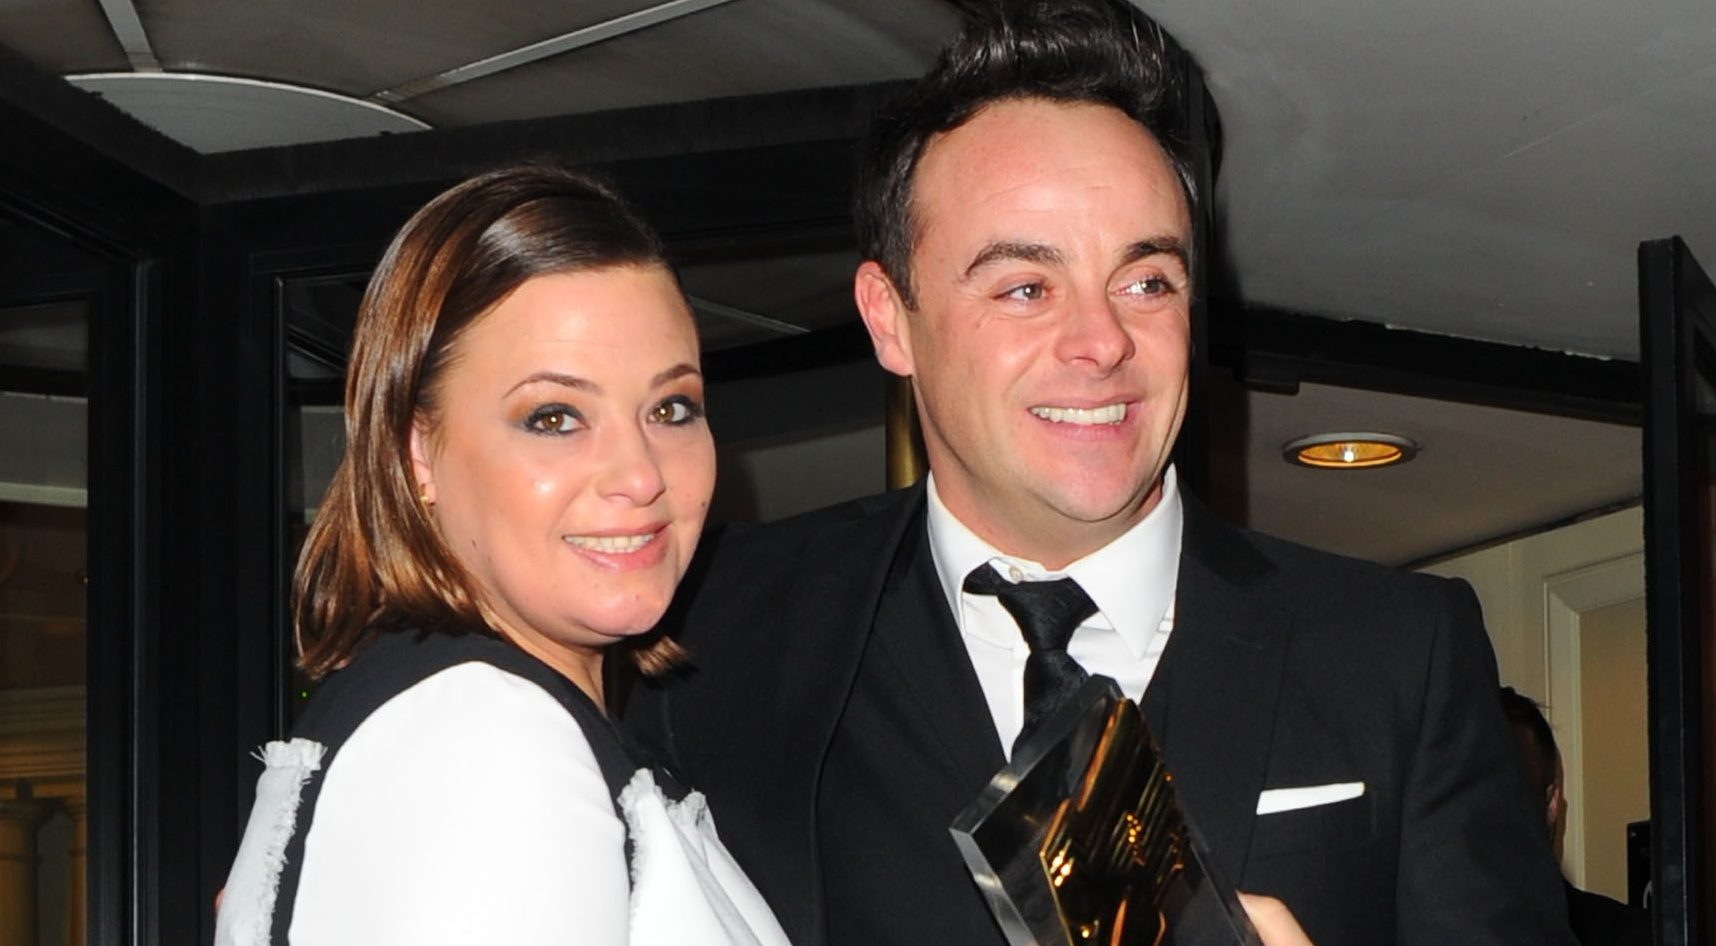 Ant McPartlin to come face to face with Lisa Armstrong to get their divorce 'over and done with'